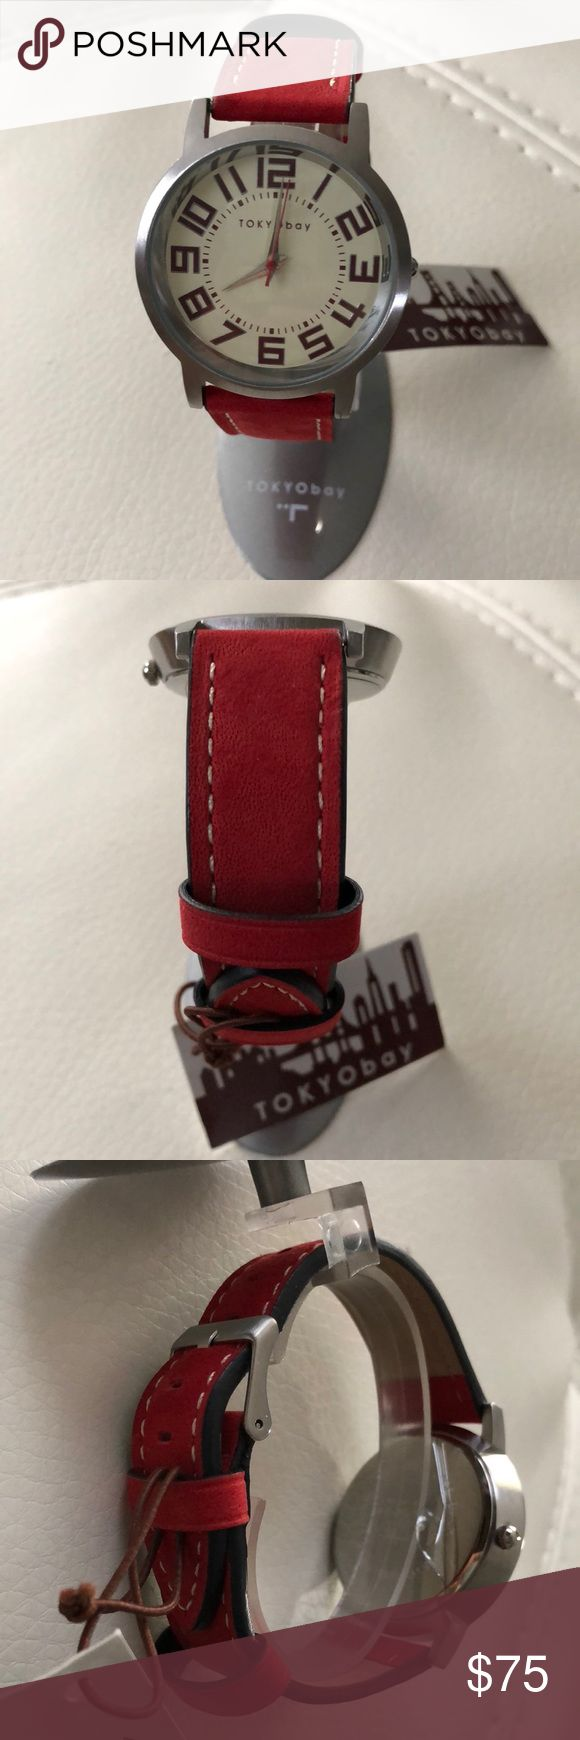 Tokyo bay watch Tokyo bay red leather band TOKYObay Jewelry Bracelets